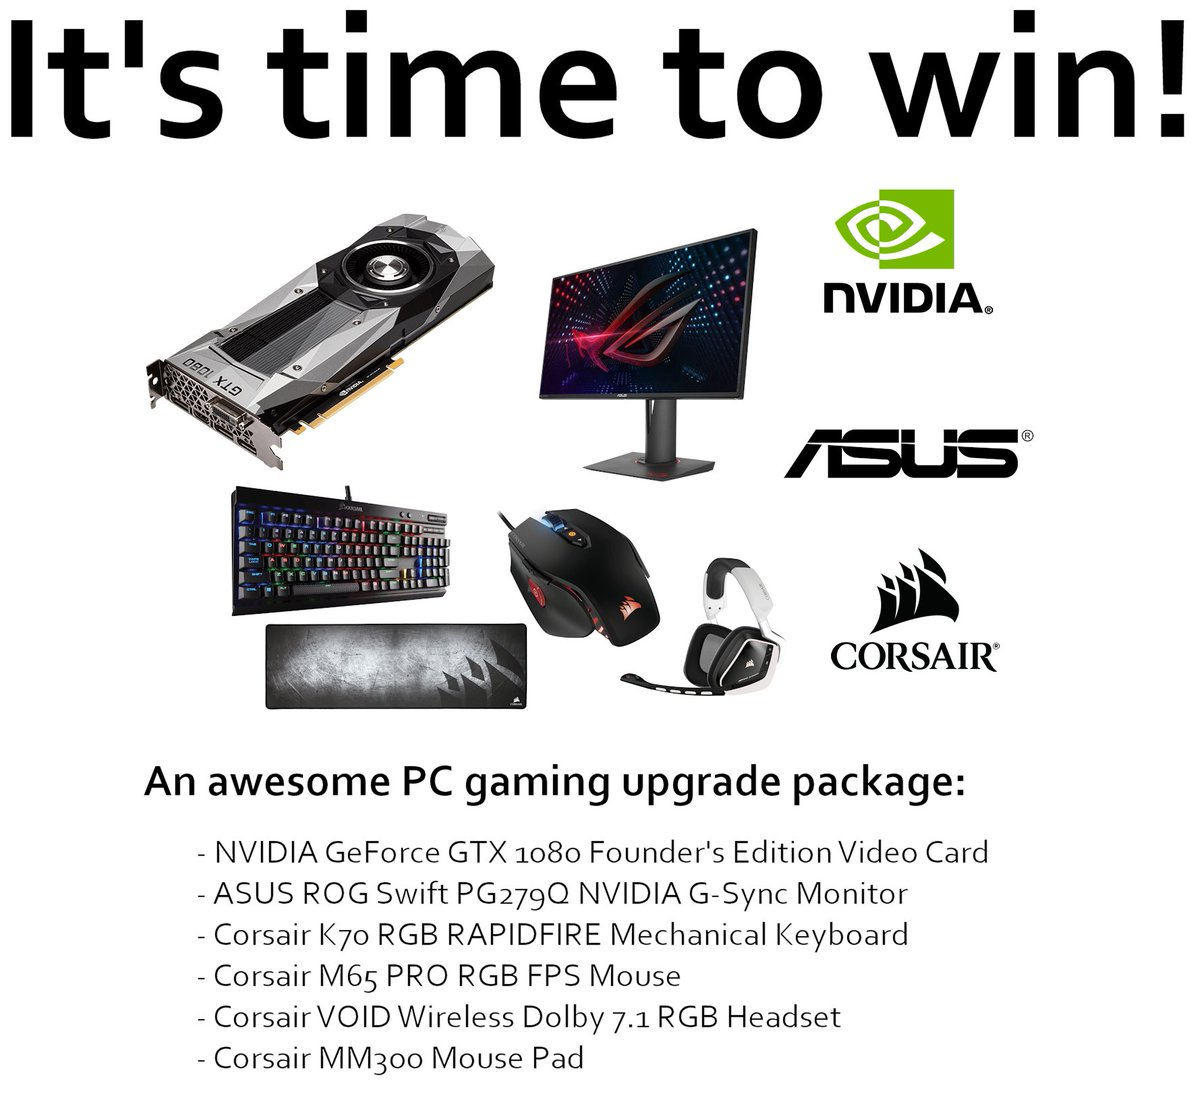 Giveaway: @NVIDIA GeForce GTX 1080 FE Upgrade Package! CC: @Corsair @ASUS (Global Entry!) https://t.co/8DeFcpN0WK